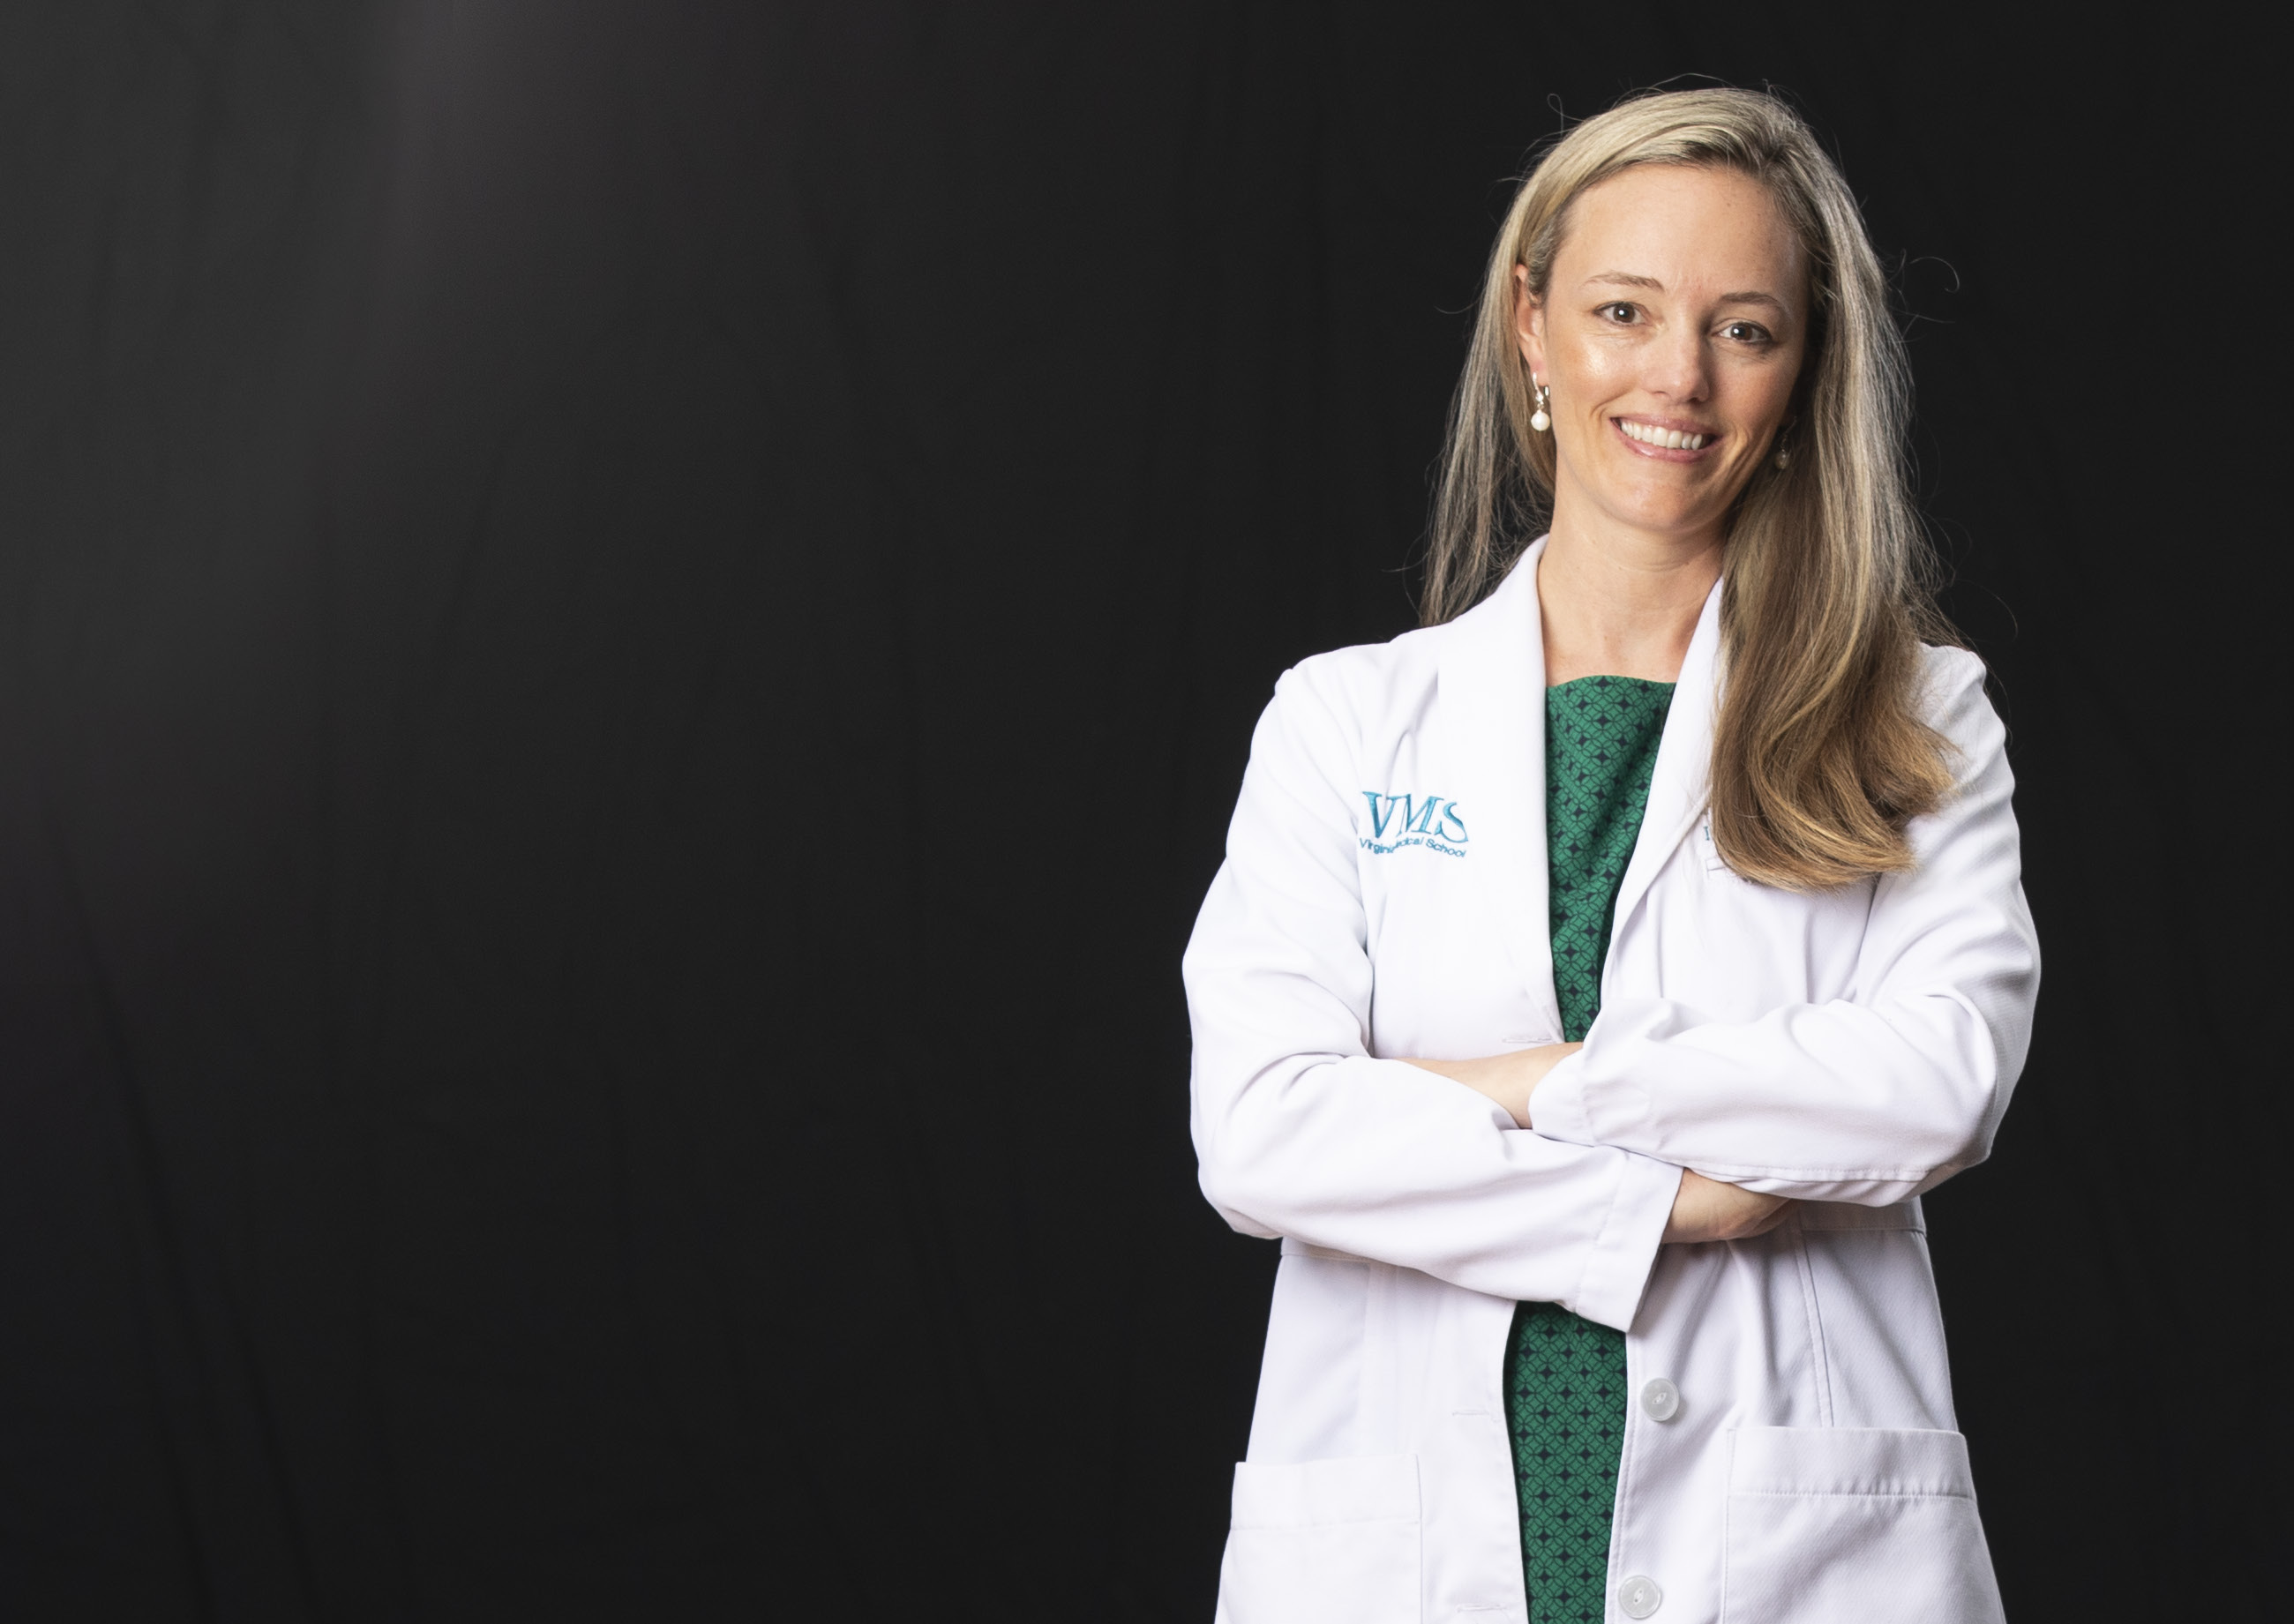 Dr. Brooke Hooper sits with her chin resting on her right hand and her legs crossed at the knees.